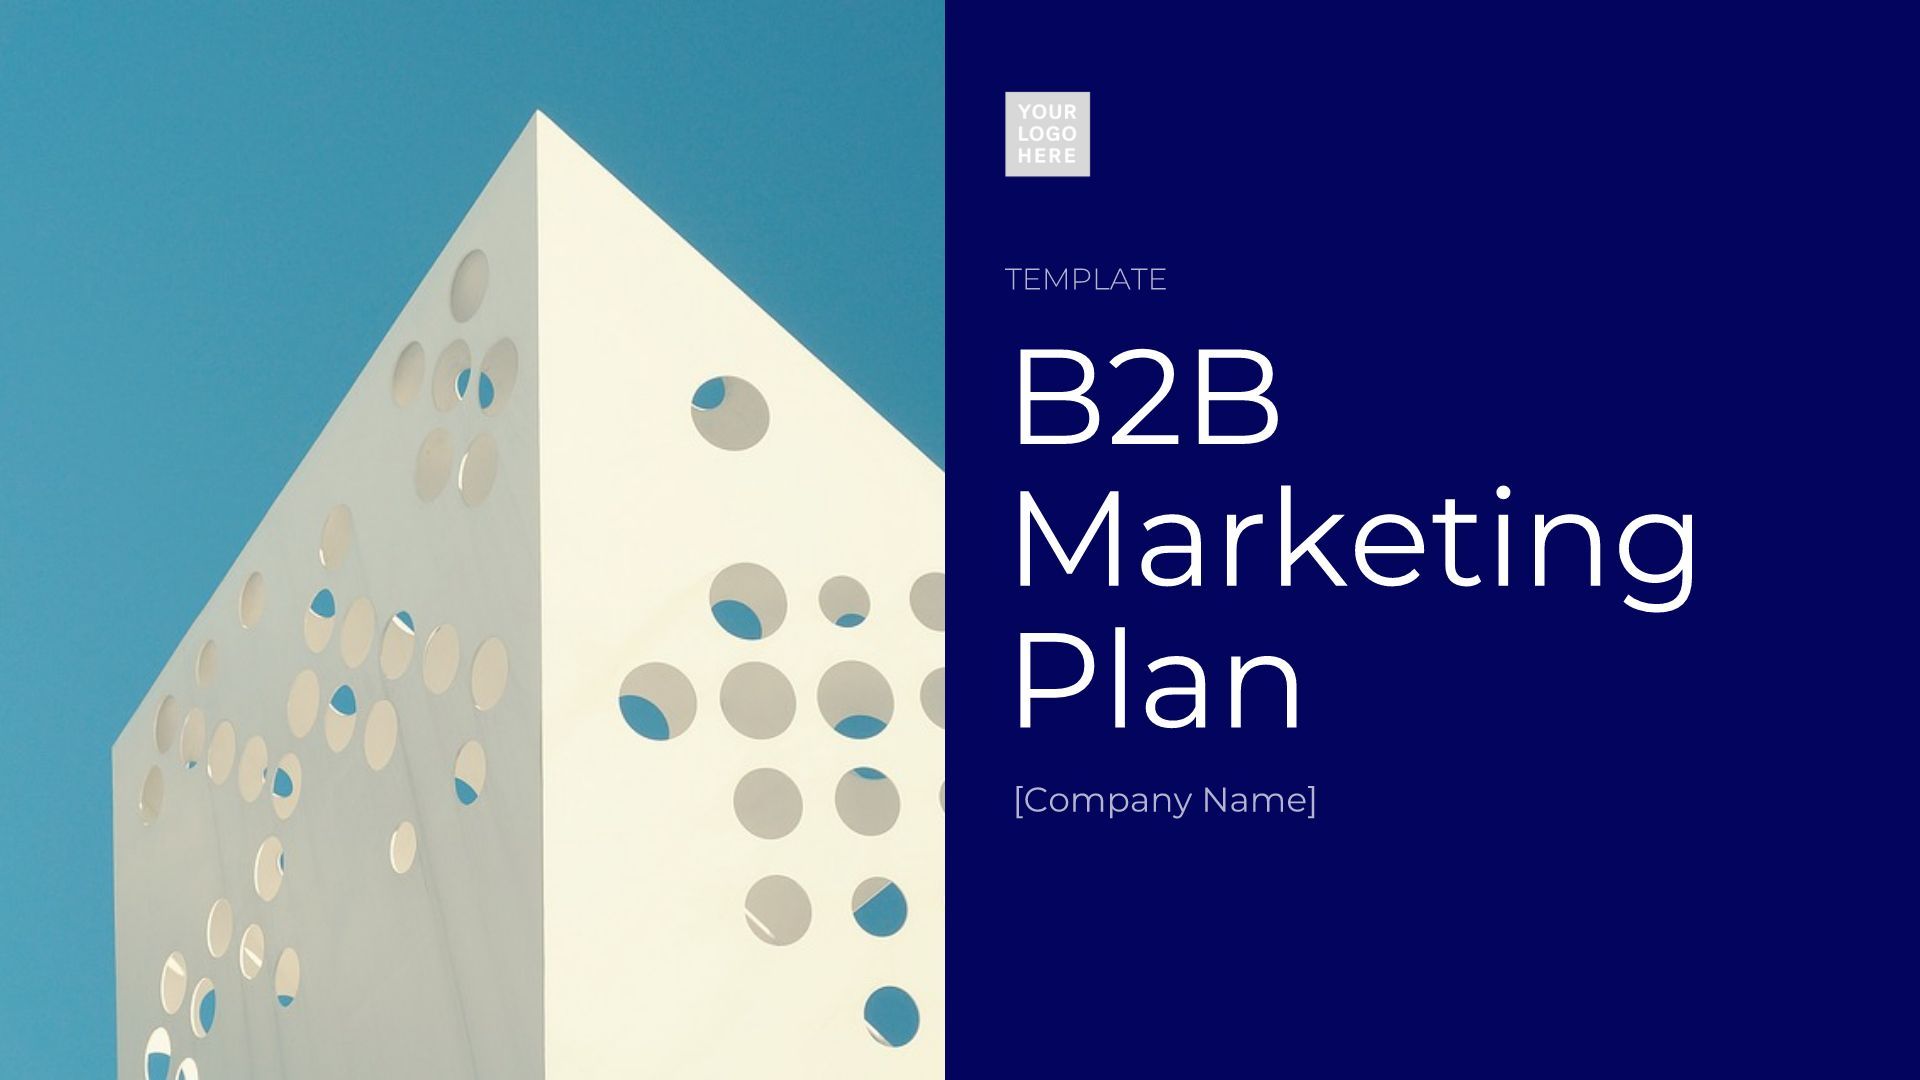 B2B Marketing Plan Template